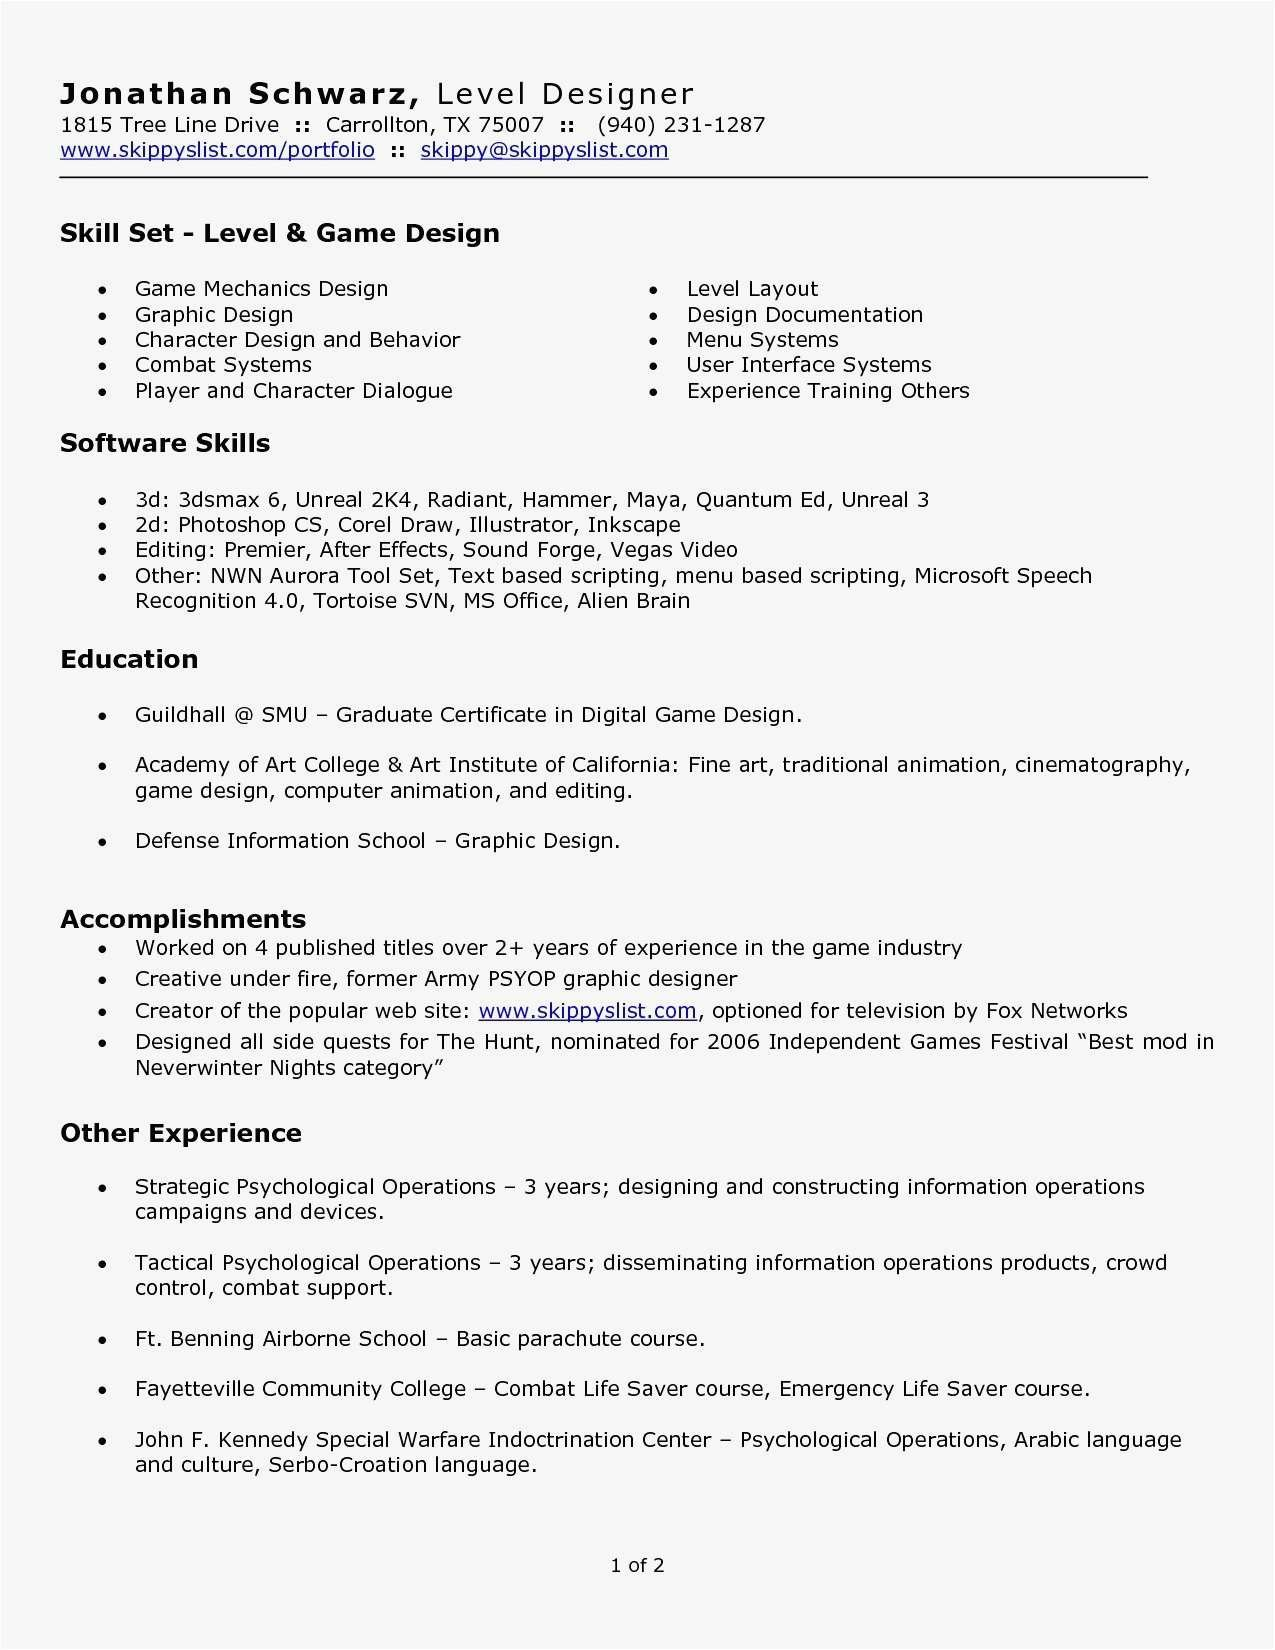 Art Worker Cover Letter | Teaching Job Cover Letter Templates At ...